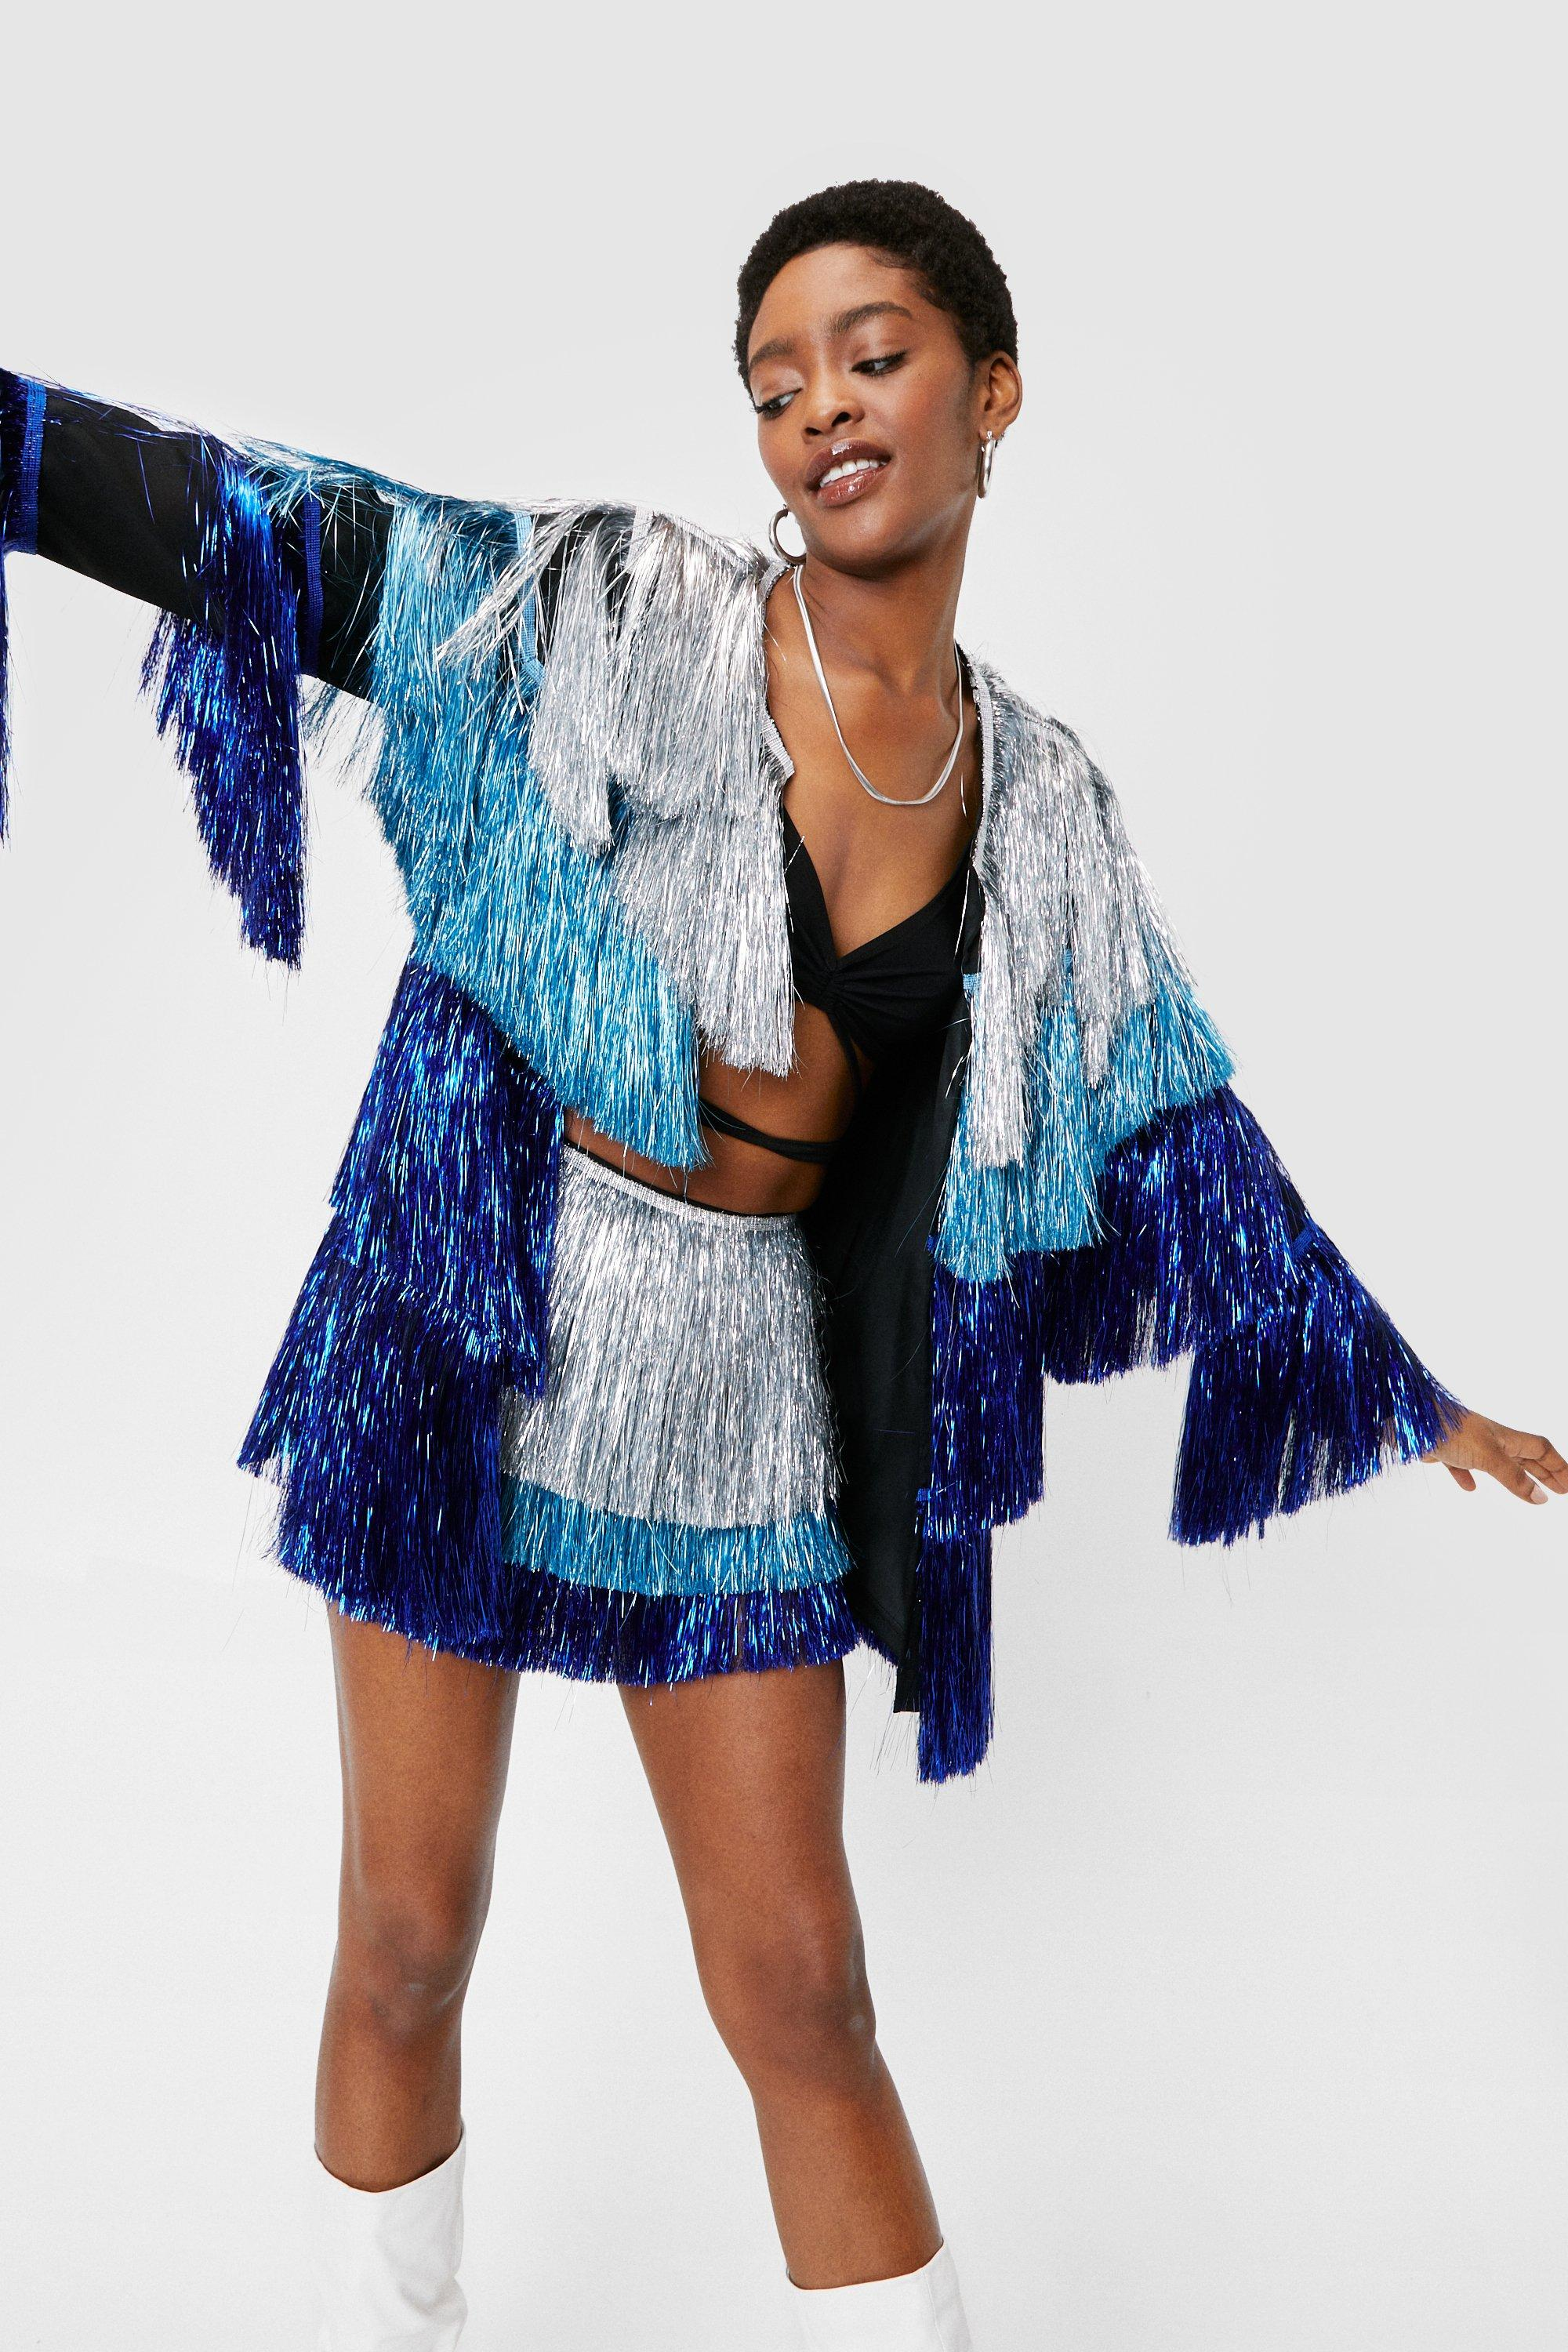 70s Clothes | Hippie Clothes & Outfits Womens Metallic Tiered Fringe Open Front Jacket - Blue - 8 $98.00 AT vintagedancer.com